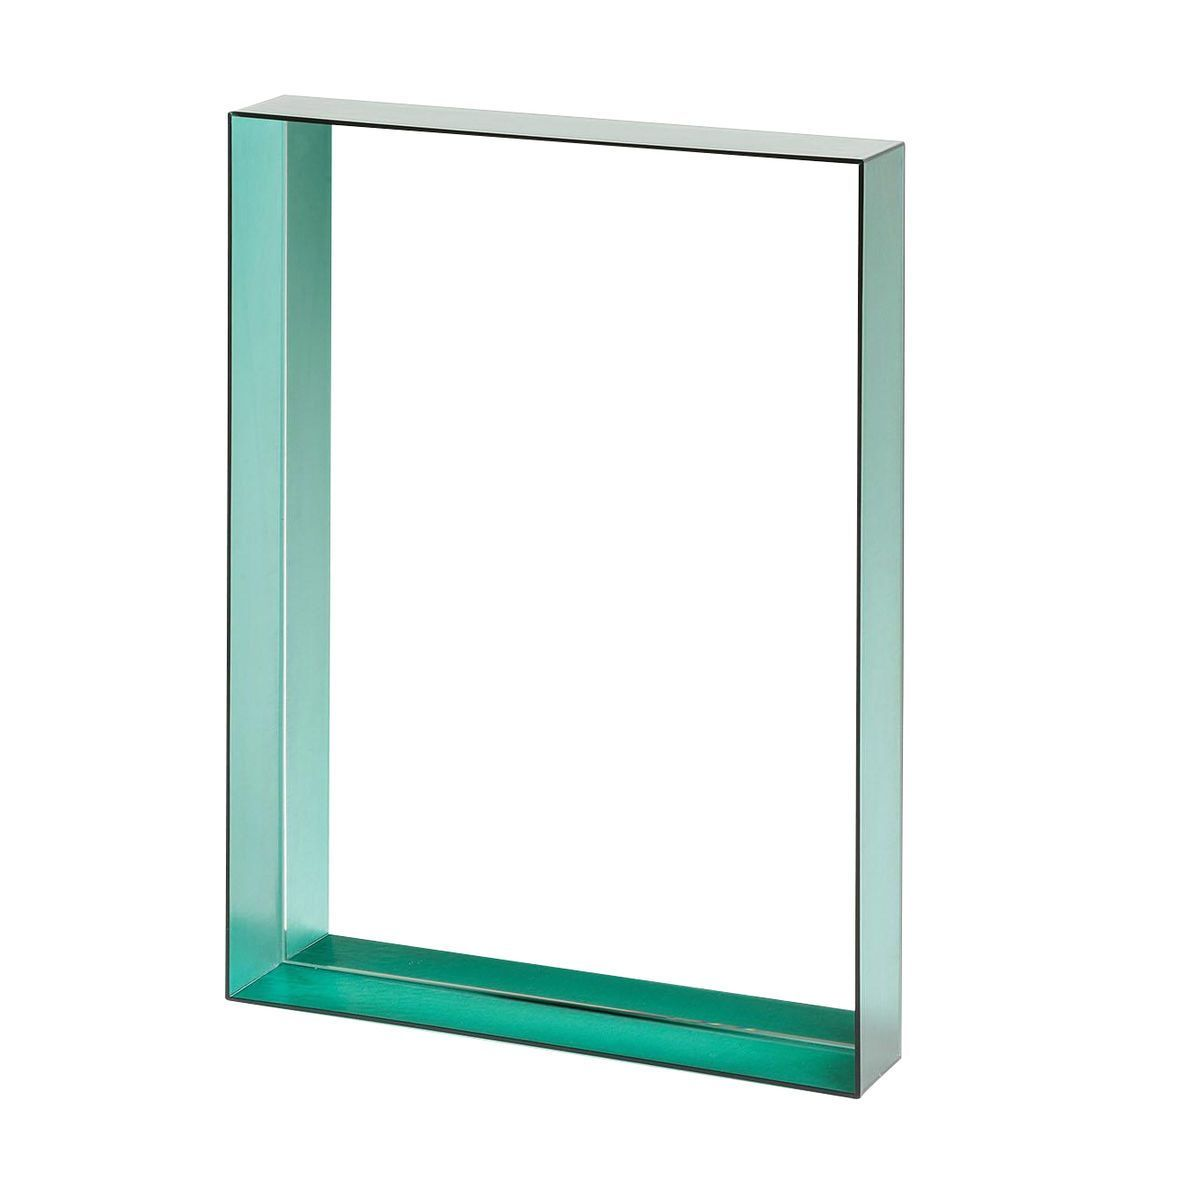 Only me mirror 50x70 kartell for Miroir 50x70